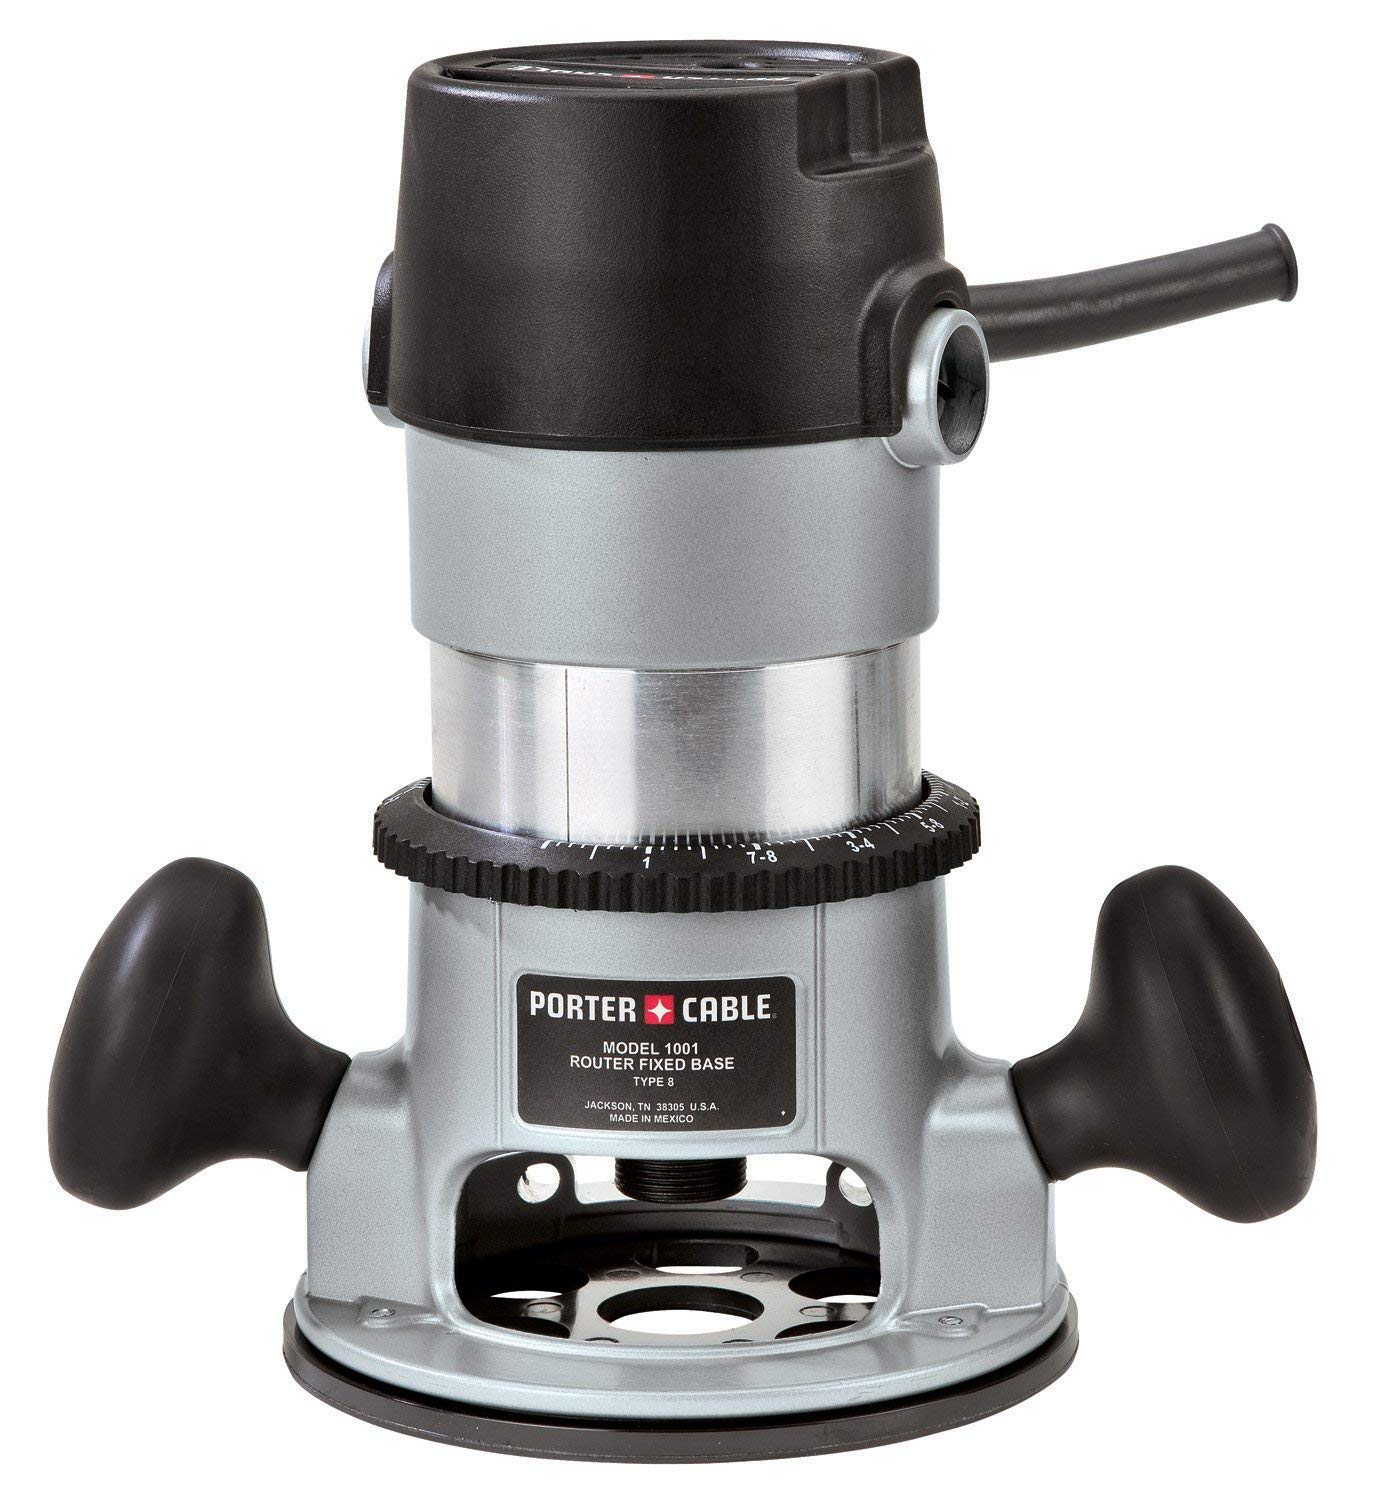 PORTER-CABLE 690LR Fixed Base Router